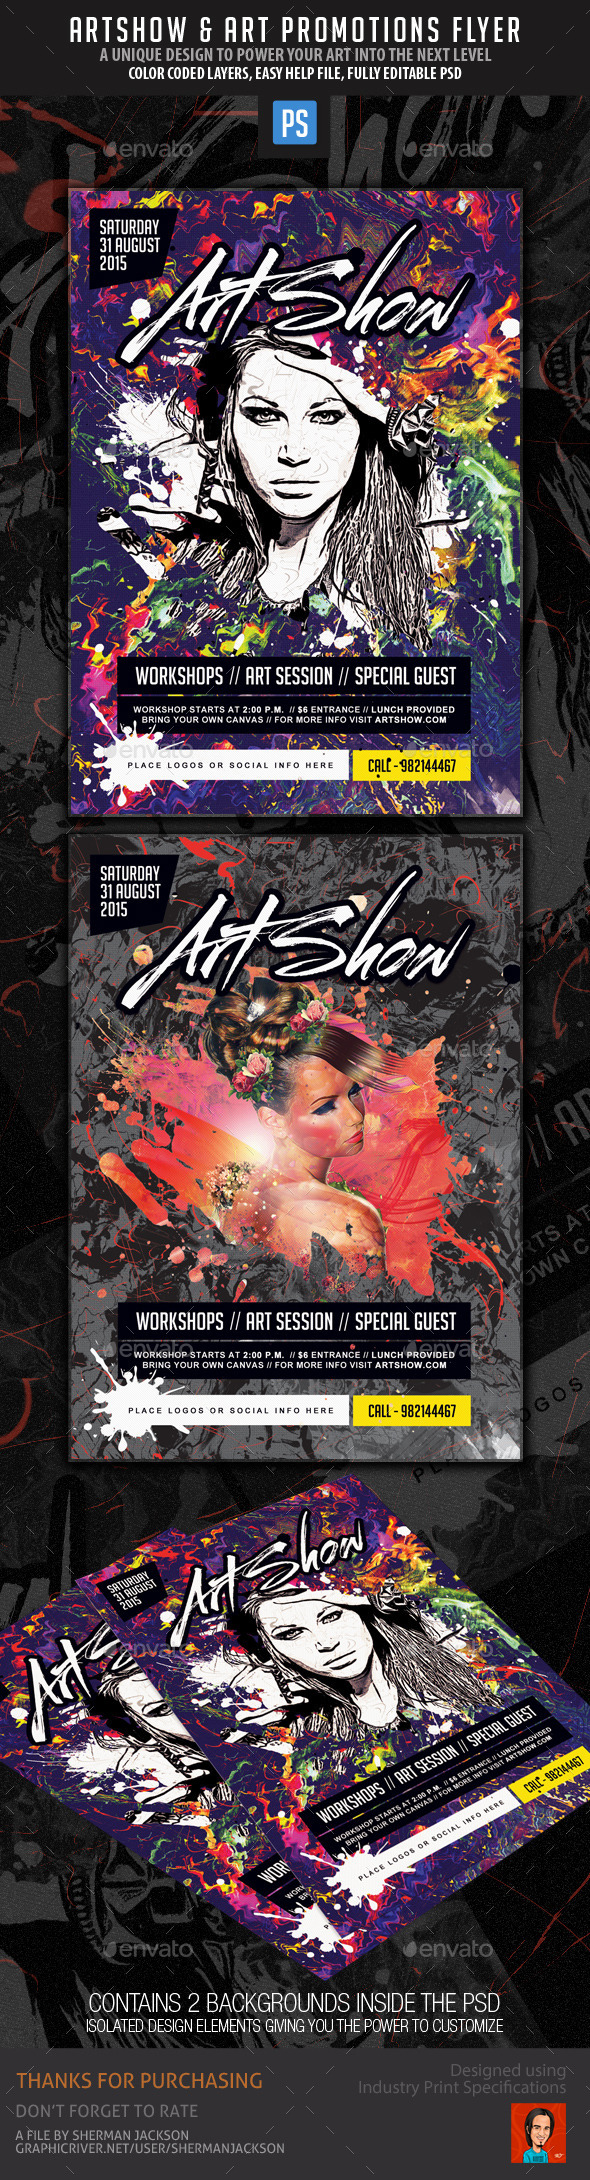 Art Show Promotional Flyer - Events Flyers